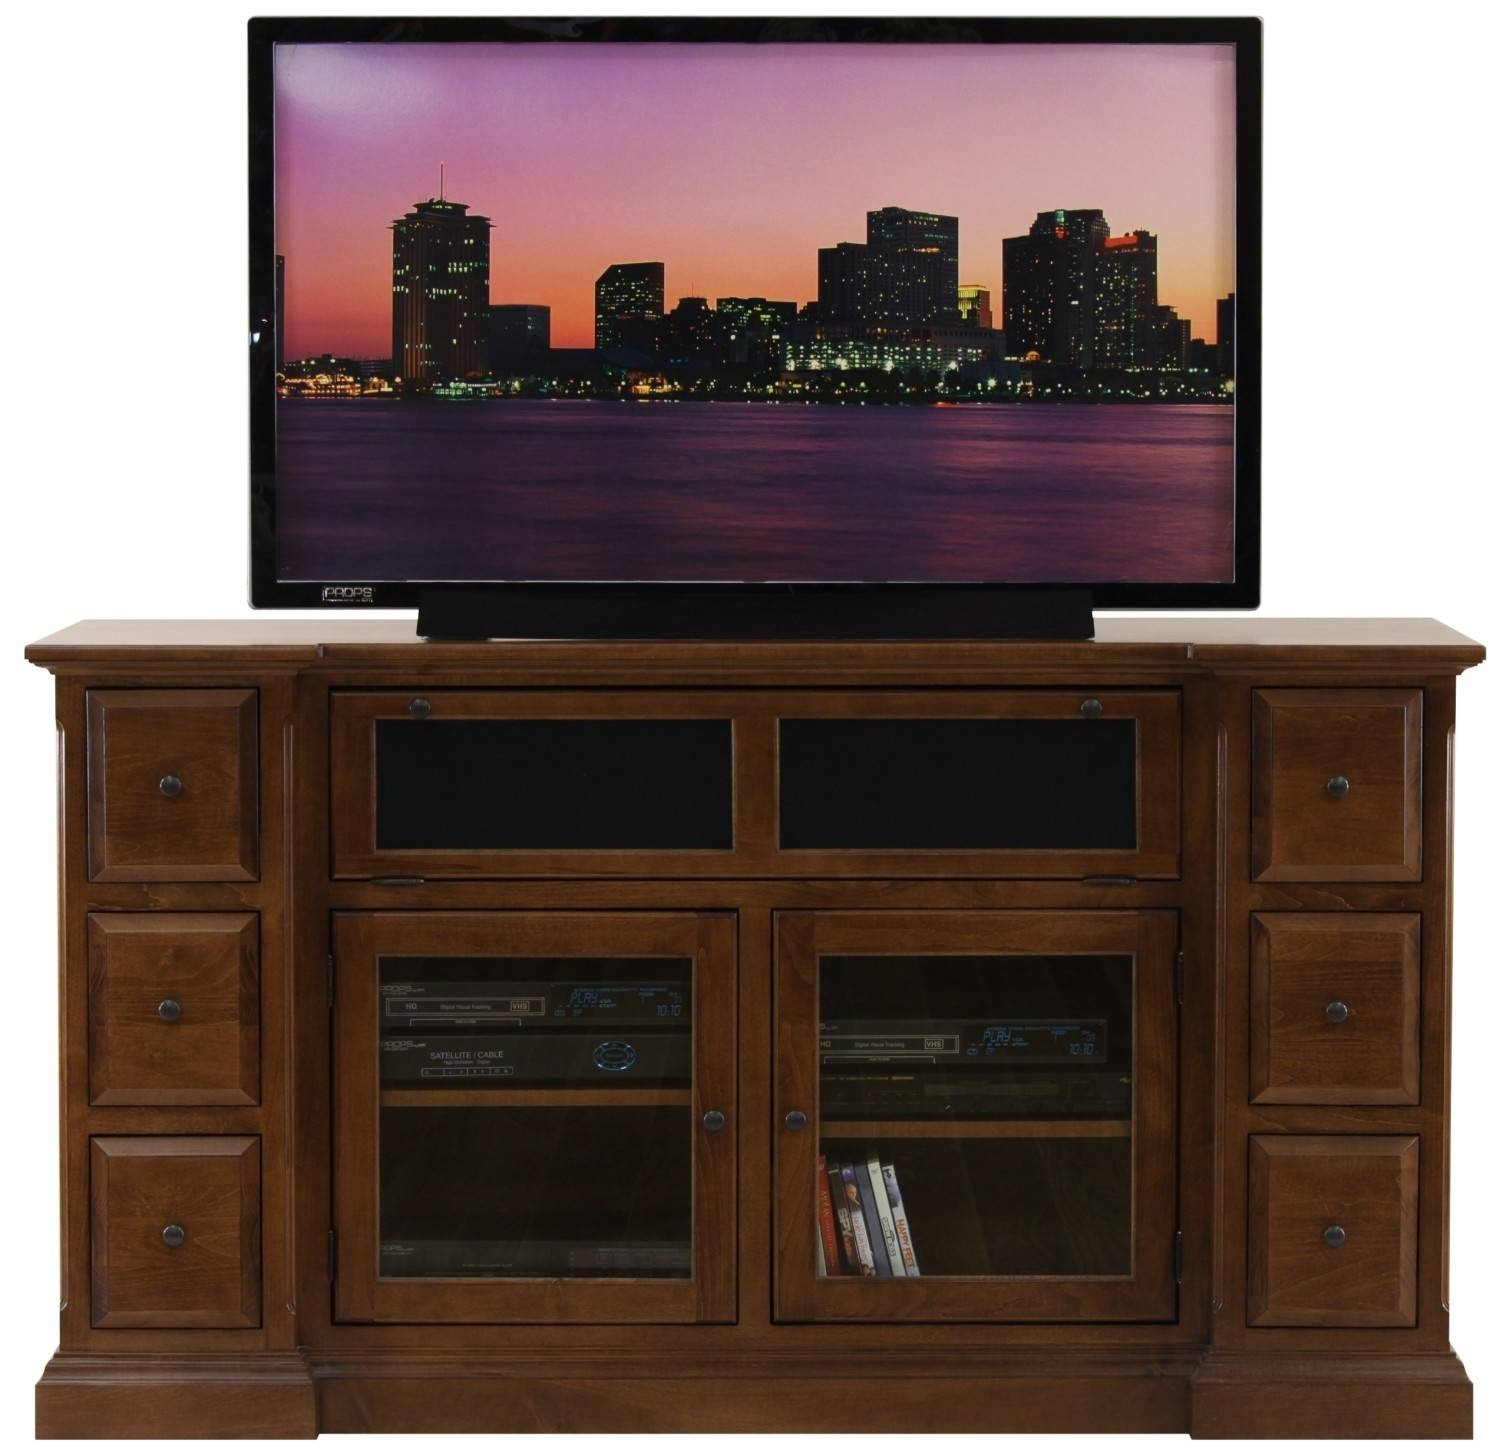 Fresh Denver Cherry Wood Tv Stand Walmart #17102 for Cherry Wood Tv Stands (Image 11 of 15)